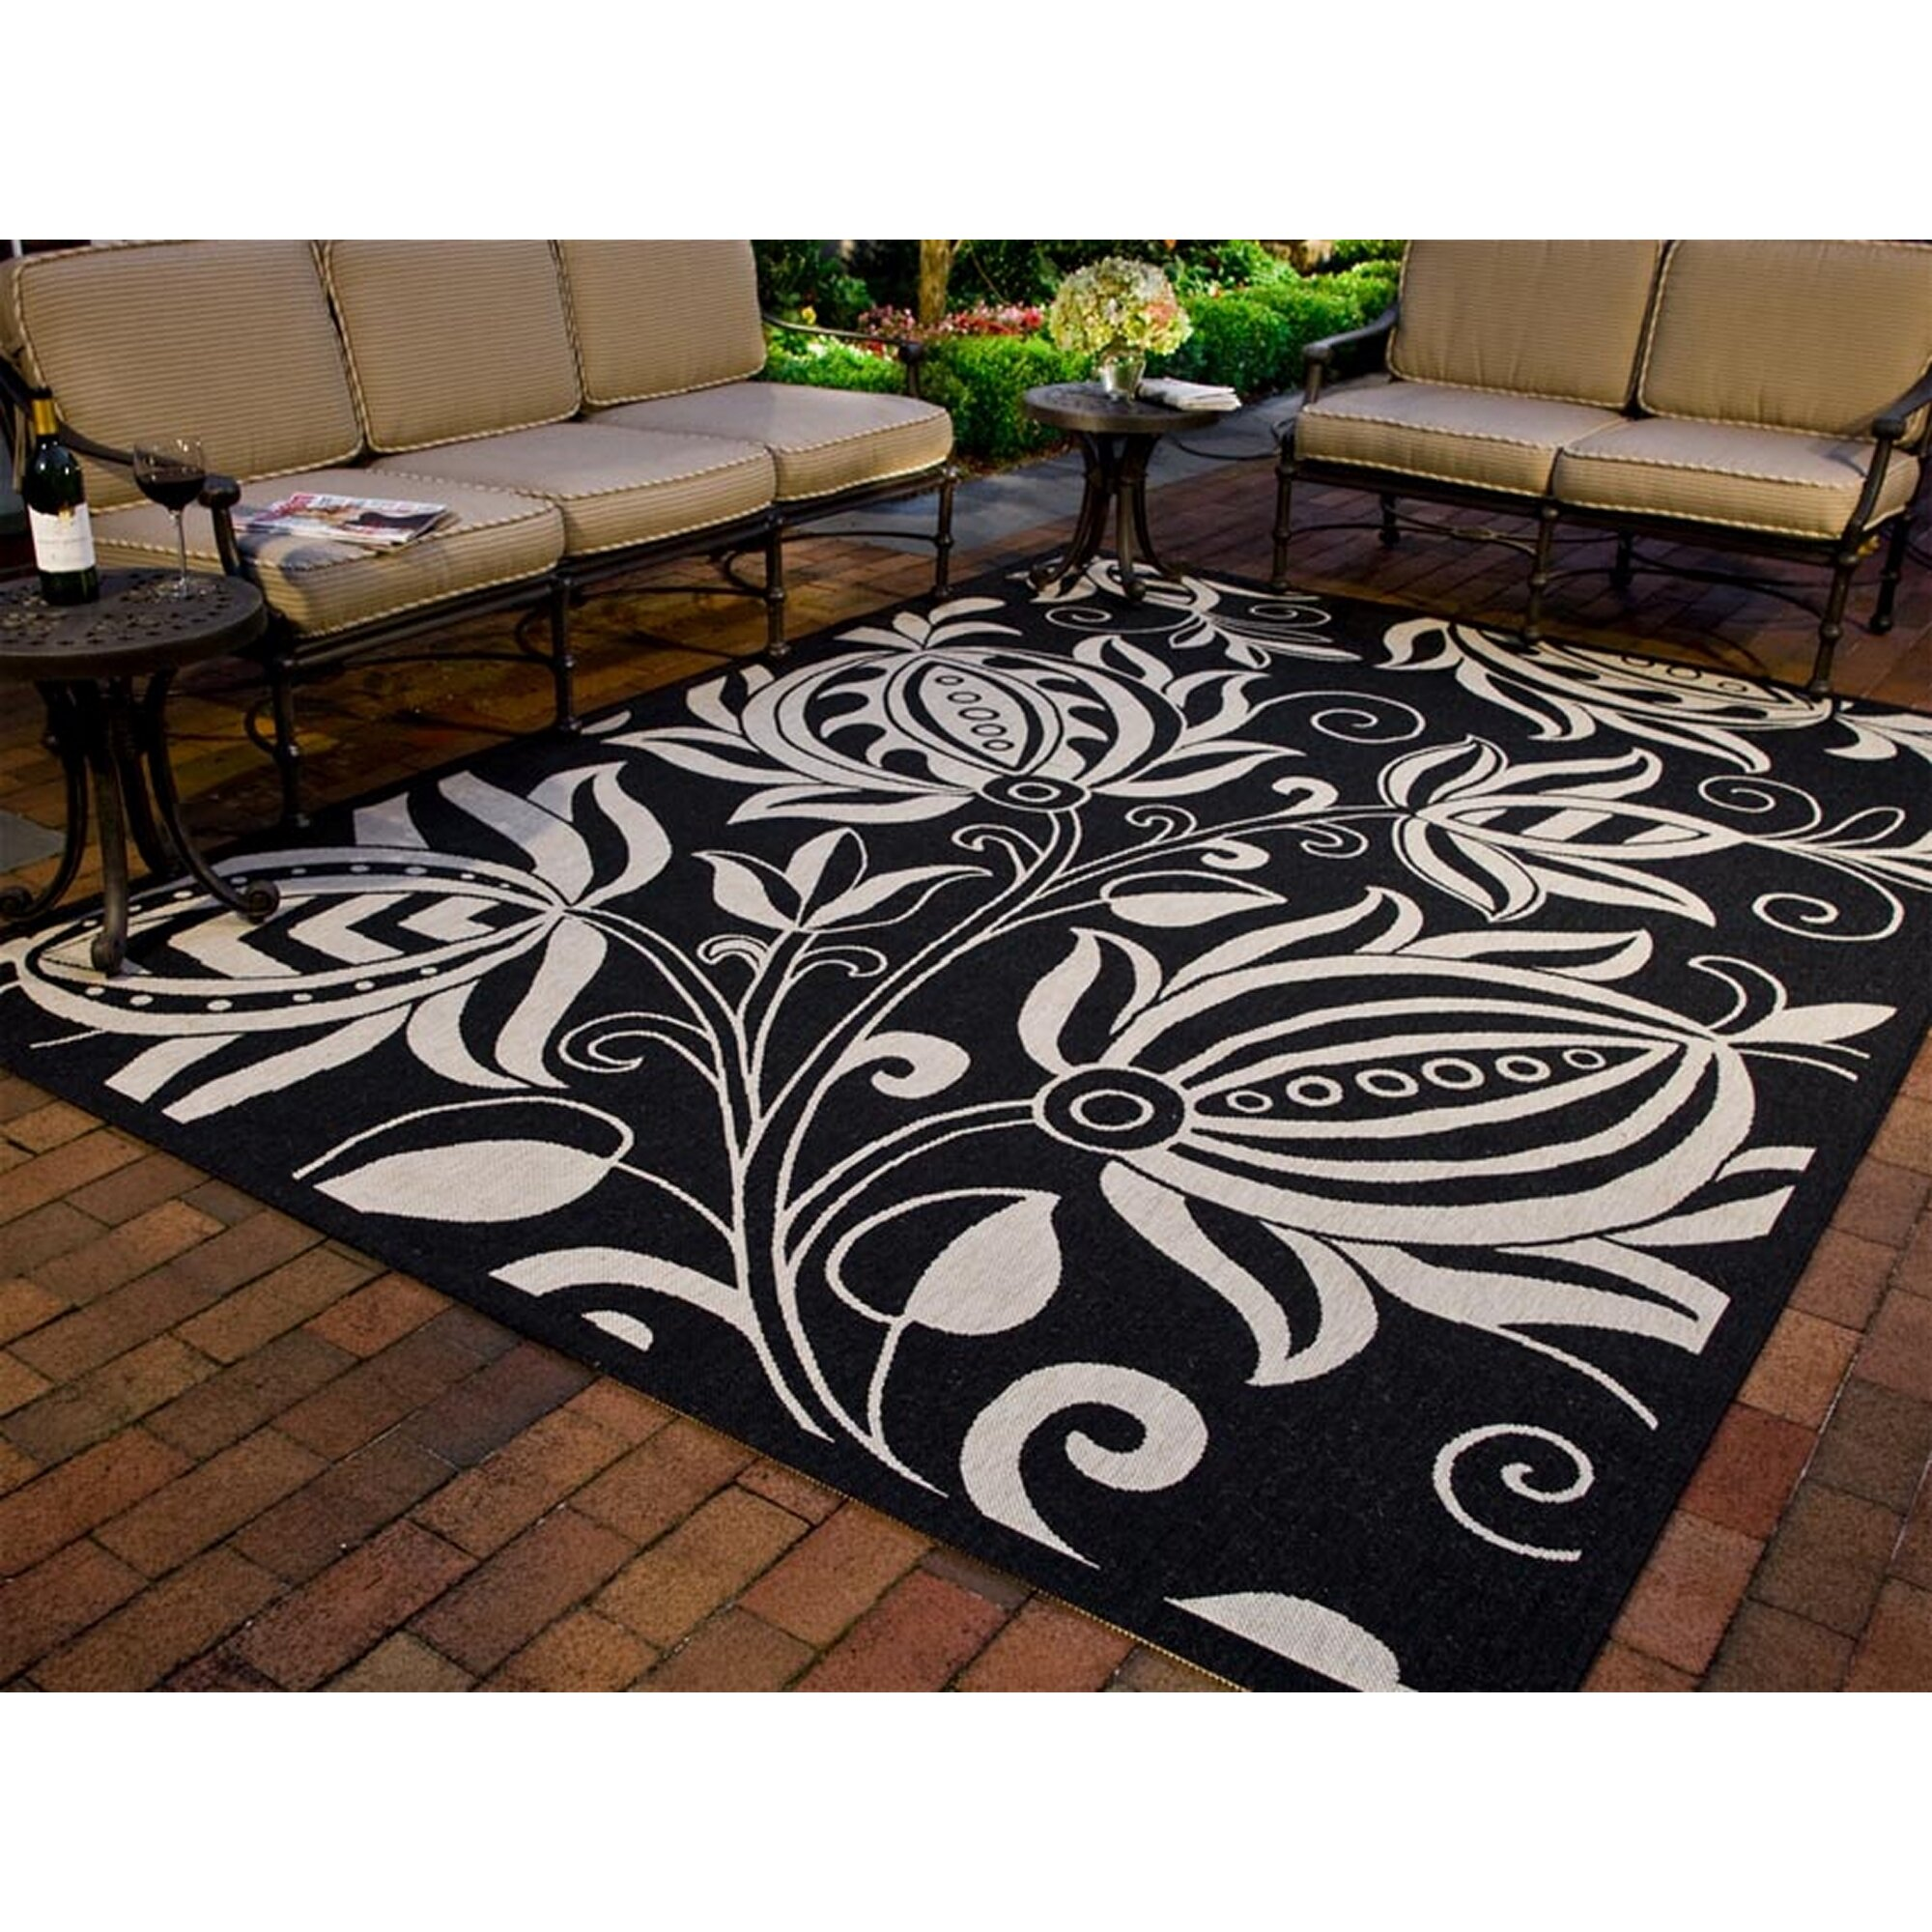 safavieh courtyard black tan indoor outdoor area rug. Black Bedroom Furniture Sets. Home Design Ideas